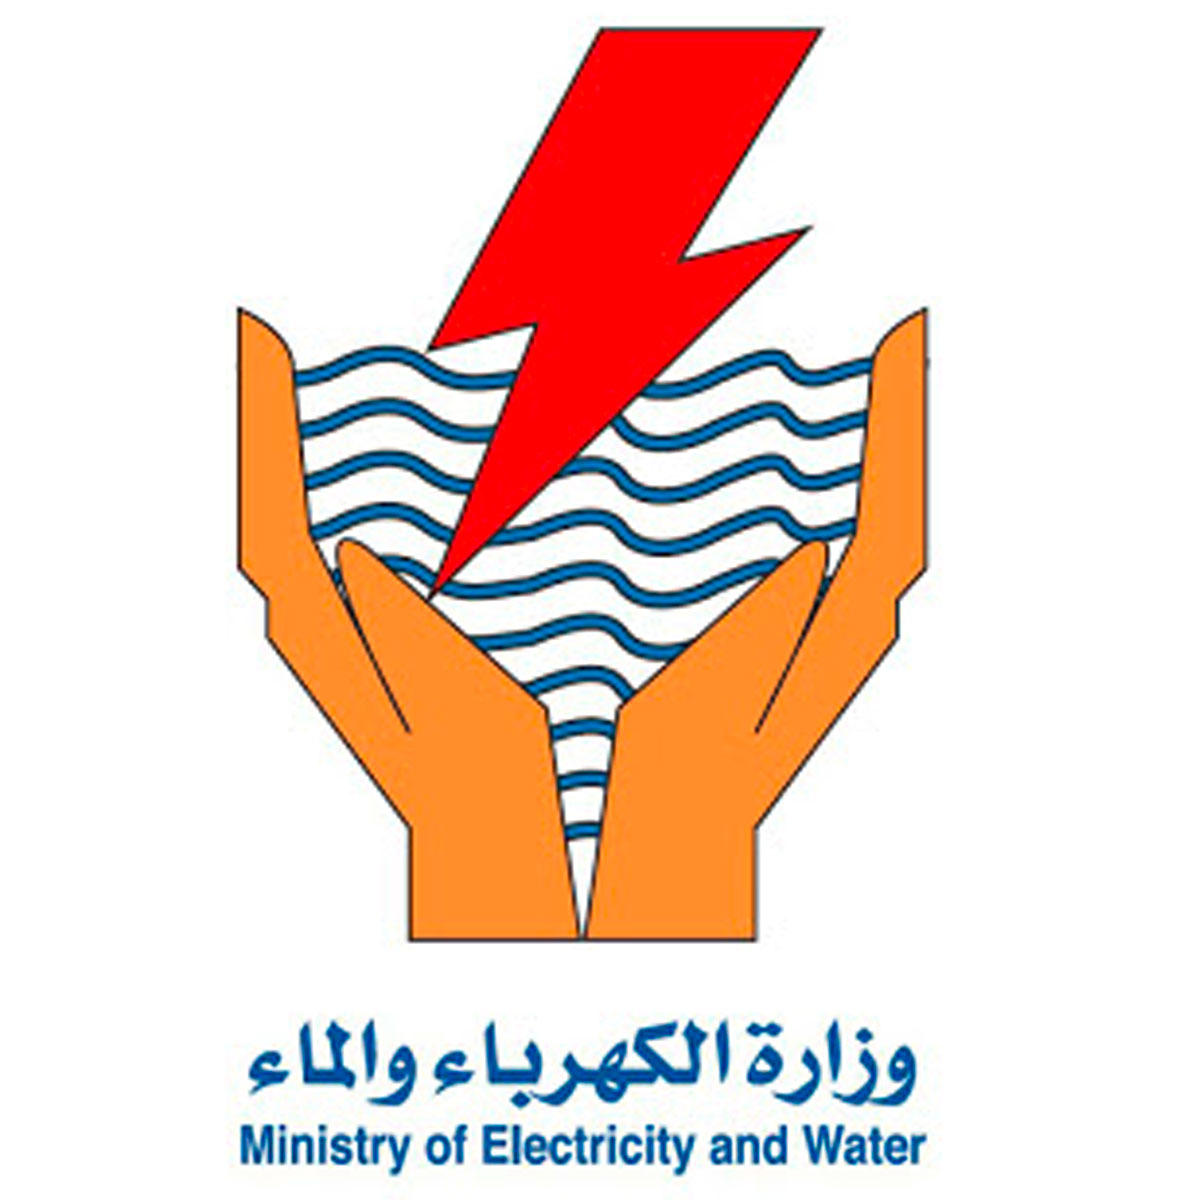 Ministry of Electricity and Water: SCAM's Institutional Customer